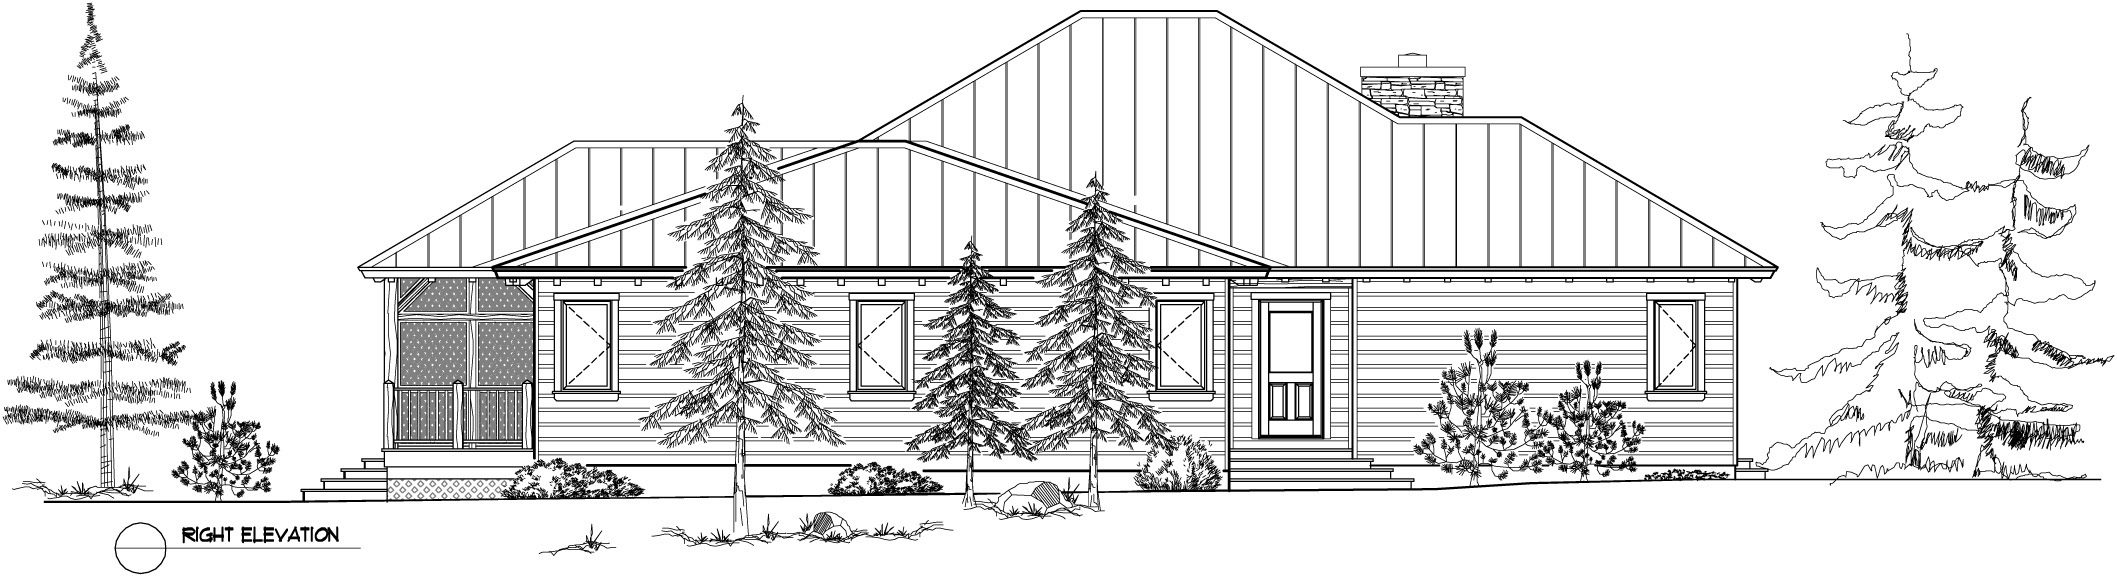 Normerica Timber Frame, House Plan, The Baril 3514, Right Elevation